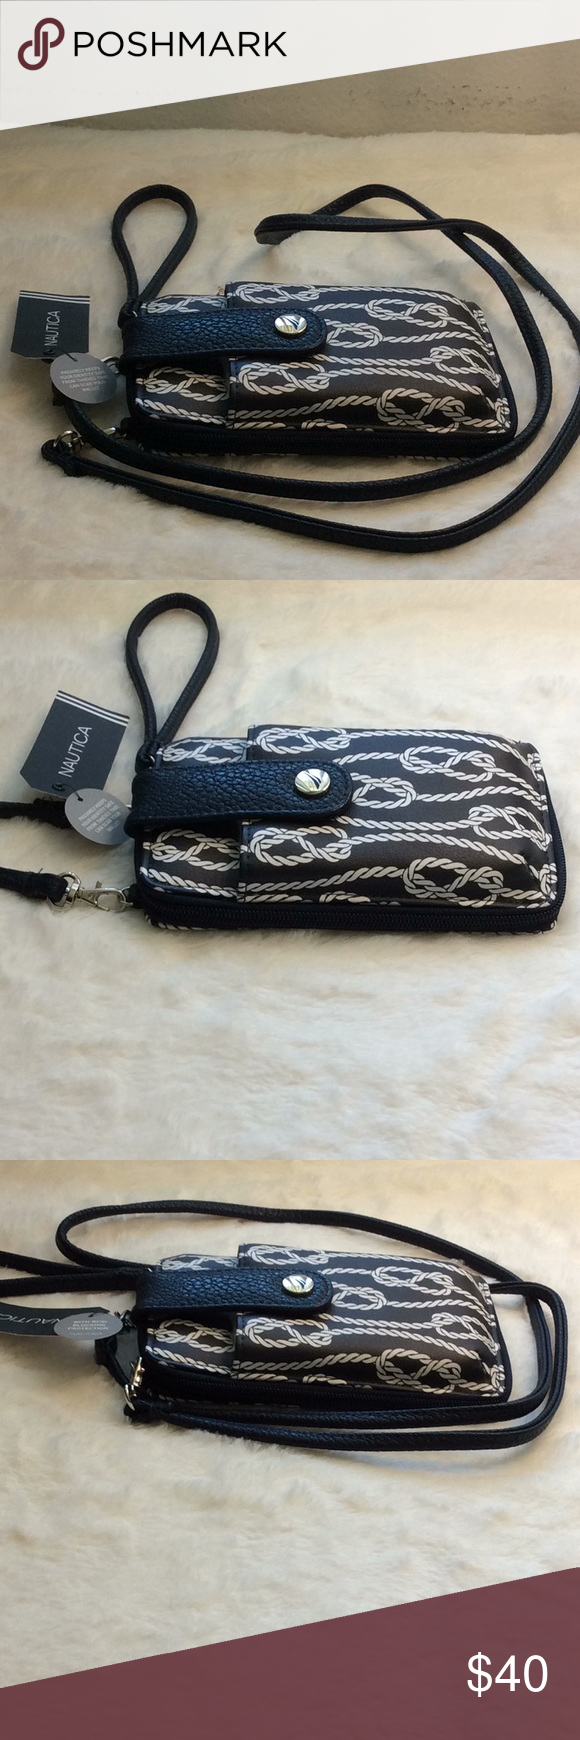 Nautica Cross Body-Clutch Wallet Wristlet   NWT Nautica Cross Body Clutch Wallet Wristlet    NWT  It has a front compartment for a CellPhone Identity protective lining. Nautica Bags Crossbody Bags